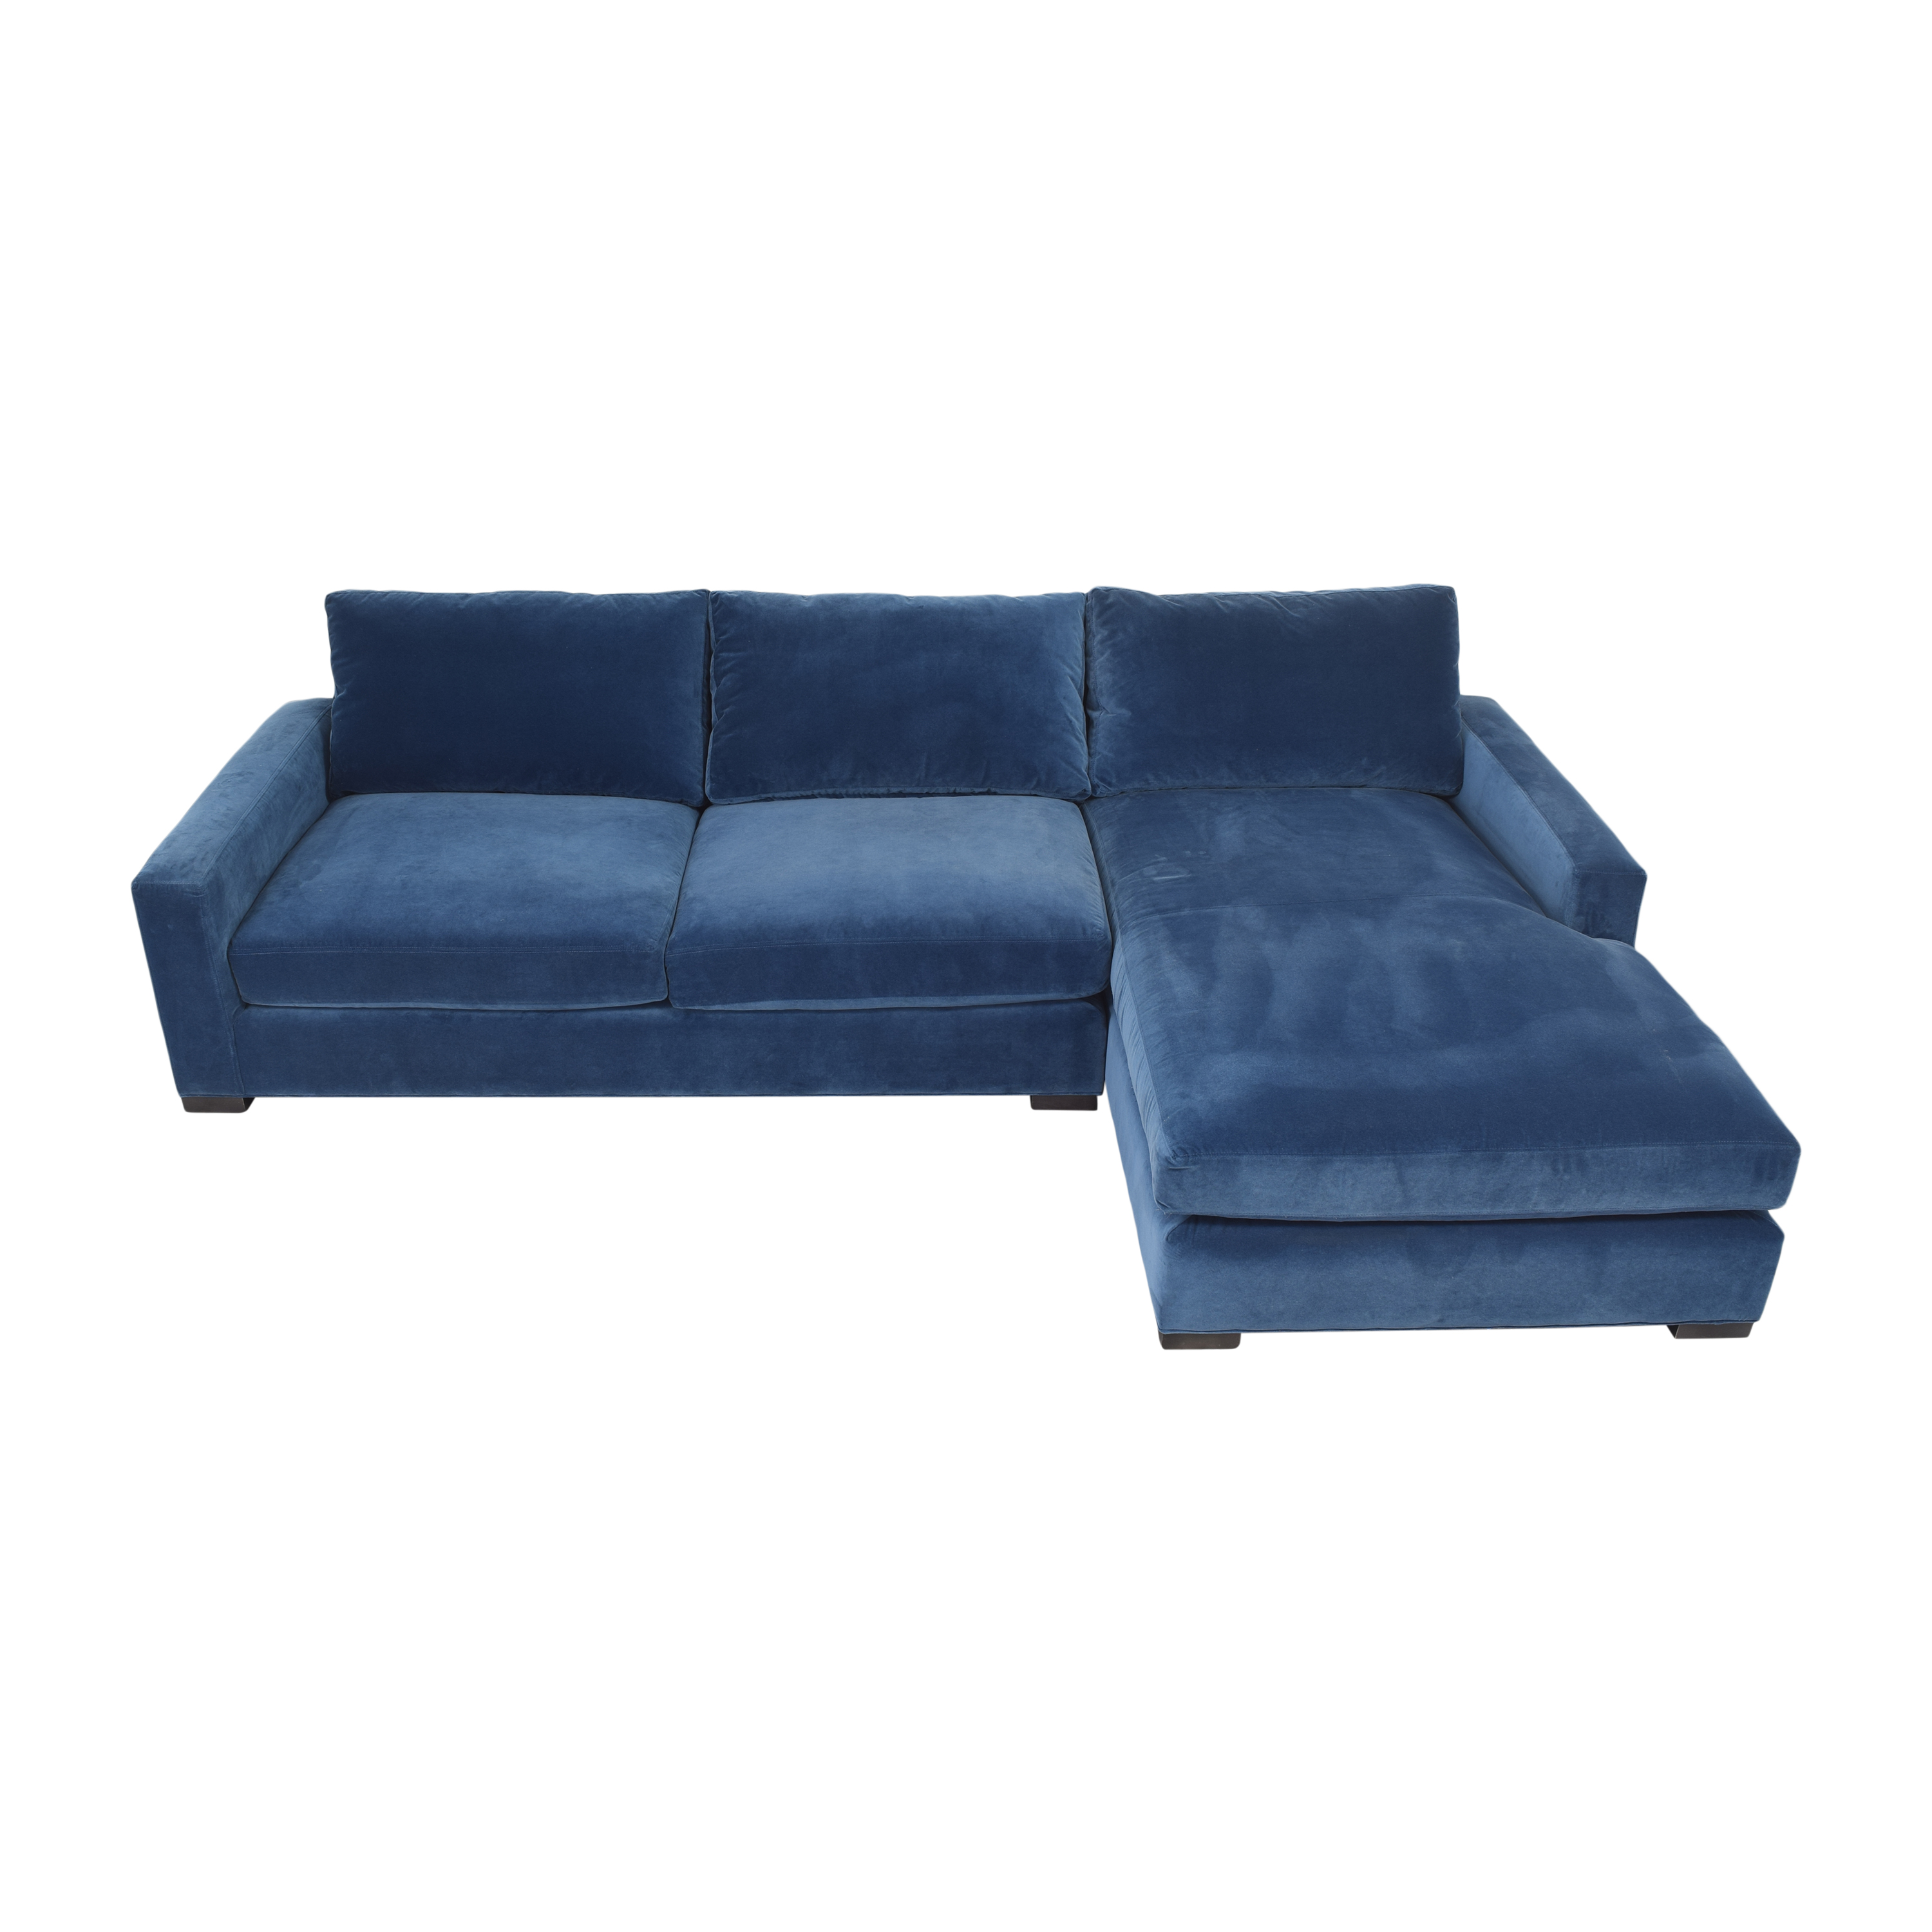 Room & Board Room & Board Metro Sectional Sofa with Chaise used